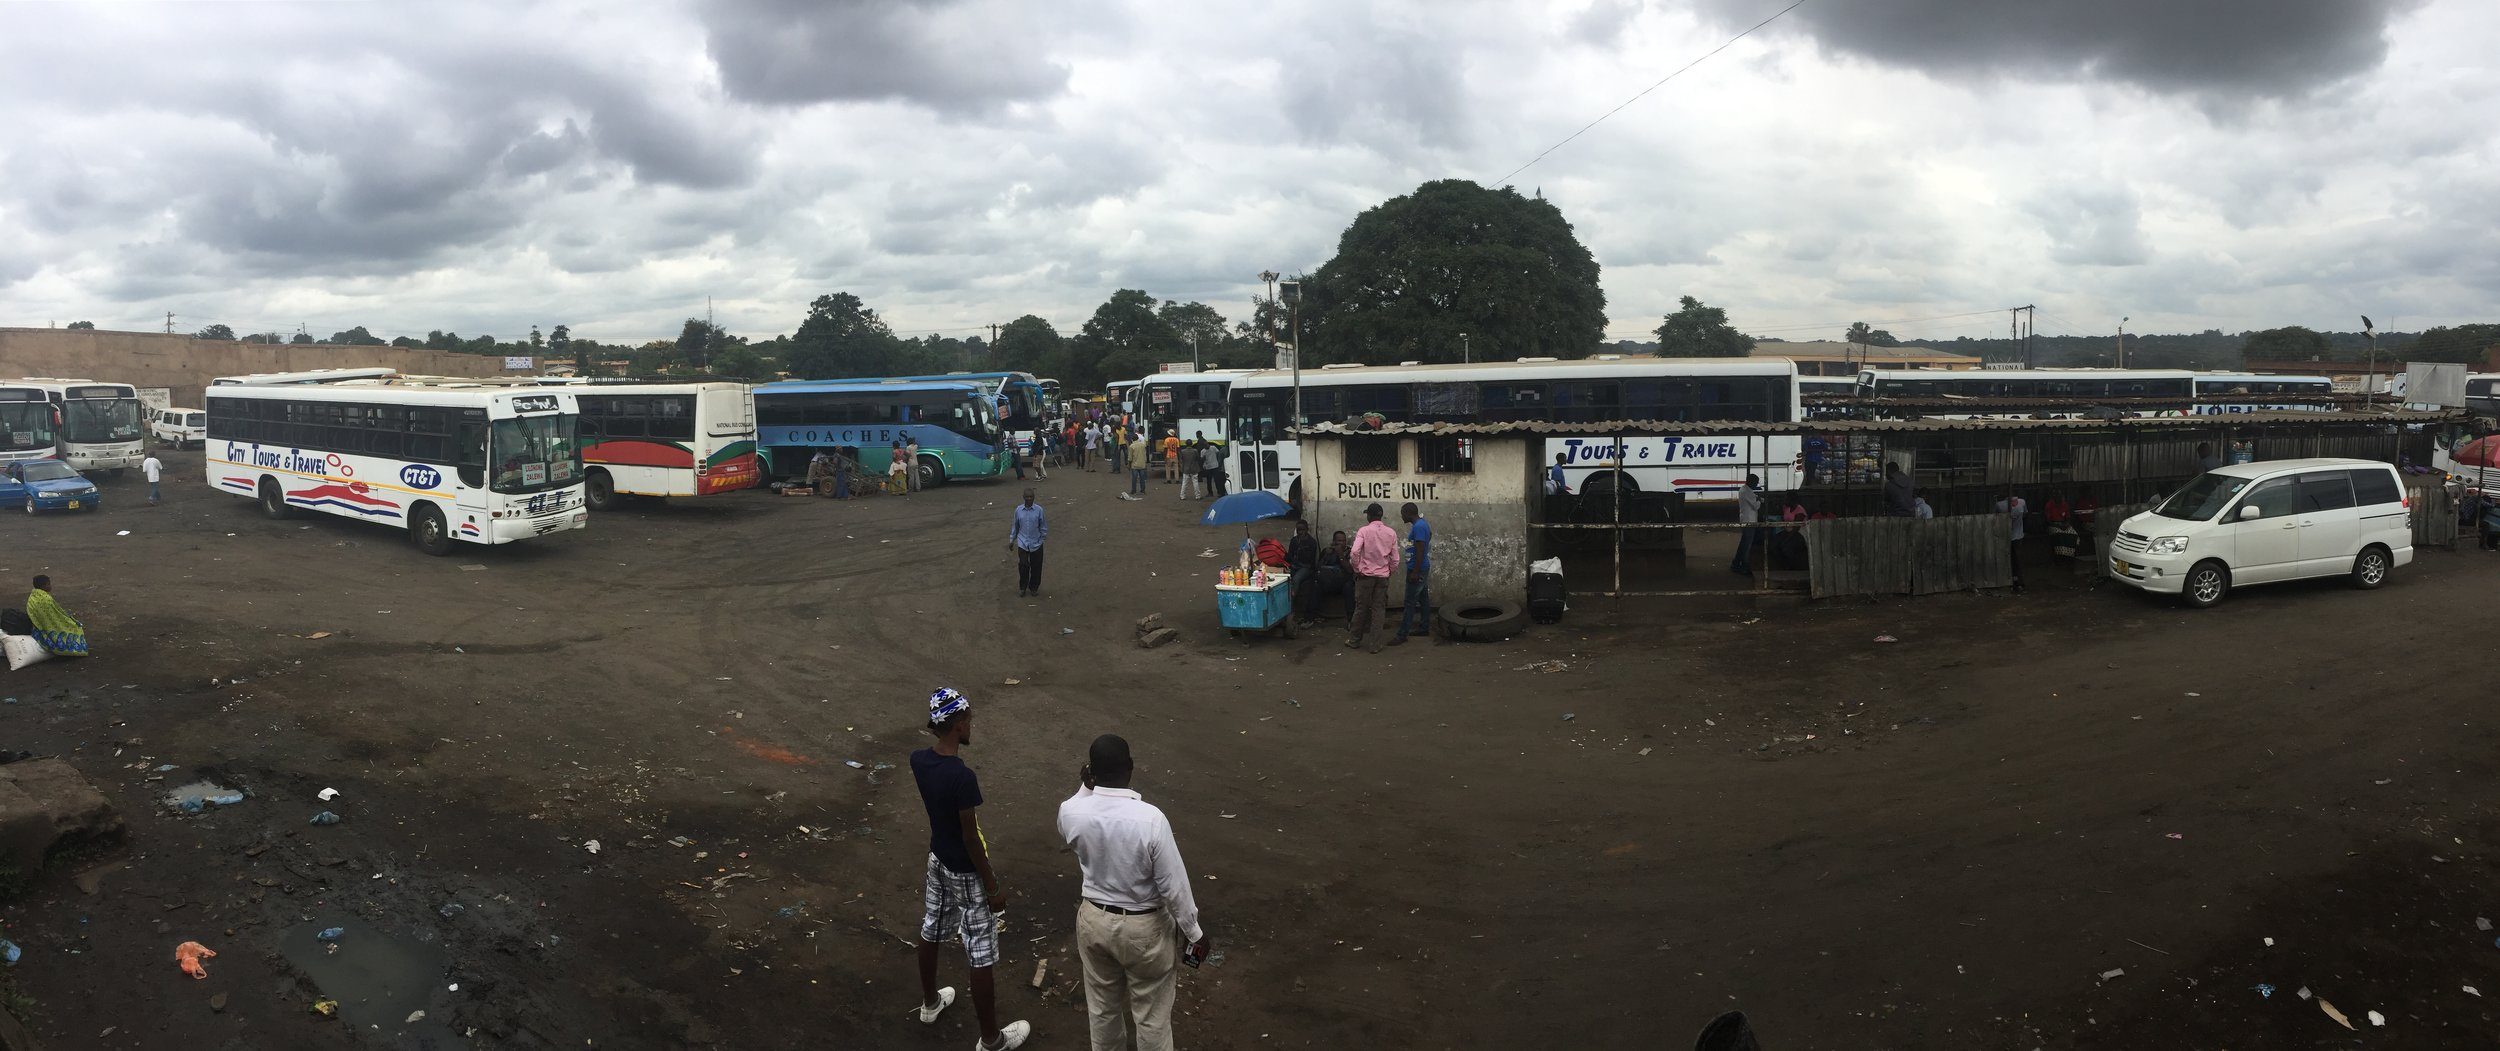 Not much happens at the Lilongwe bus stations, where travelers sit for hours waiting for their buses to load up with enough passengers enough to leave.